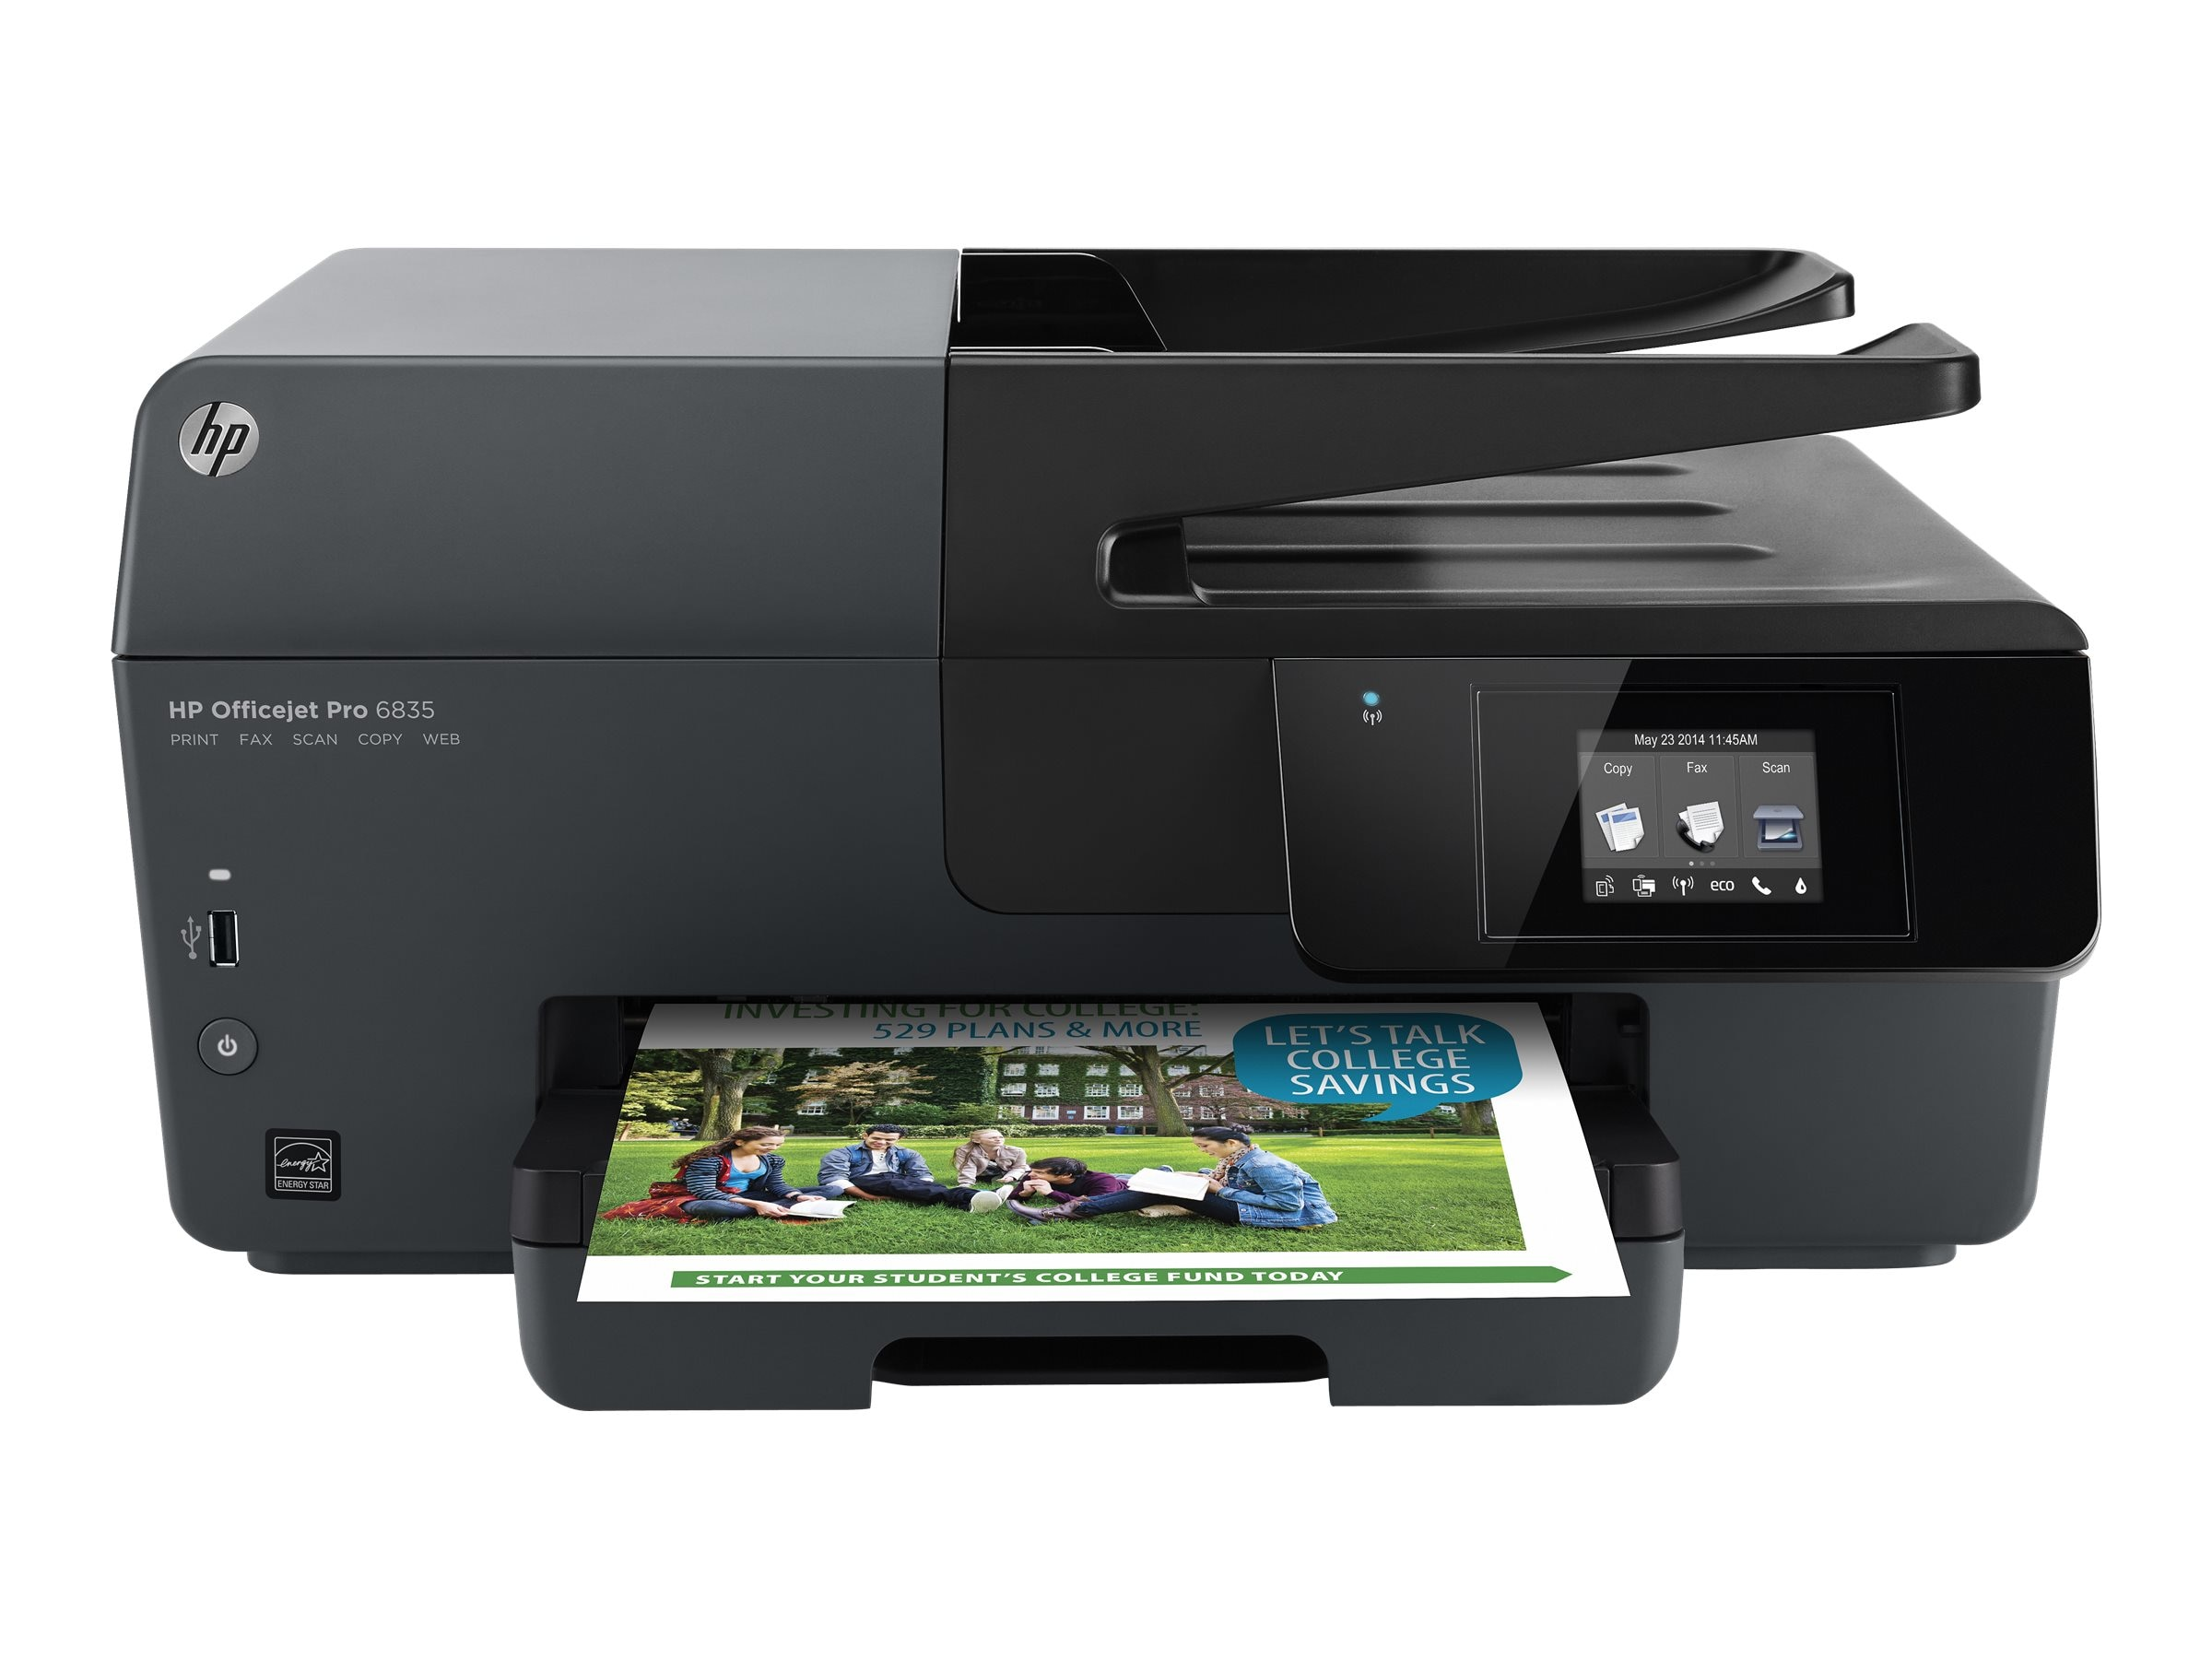 HP Officejet Pro 6835 e-All-In-One Printer, J2D37A#1H3, 31397320, MultiFunction - Ink-Jet